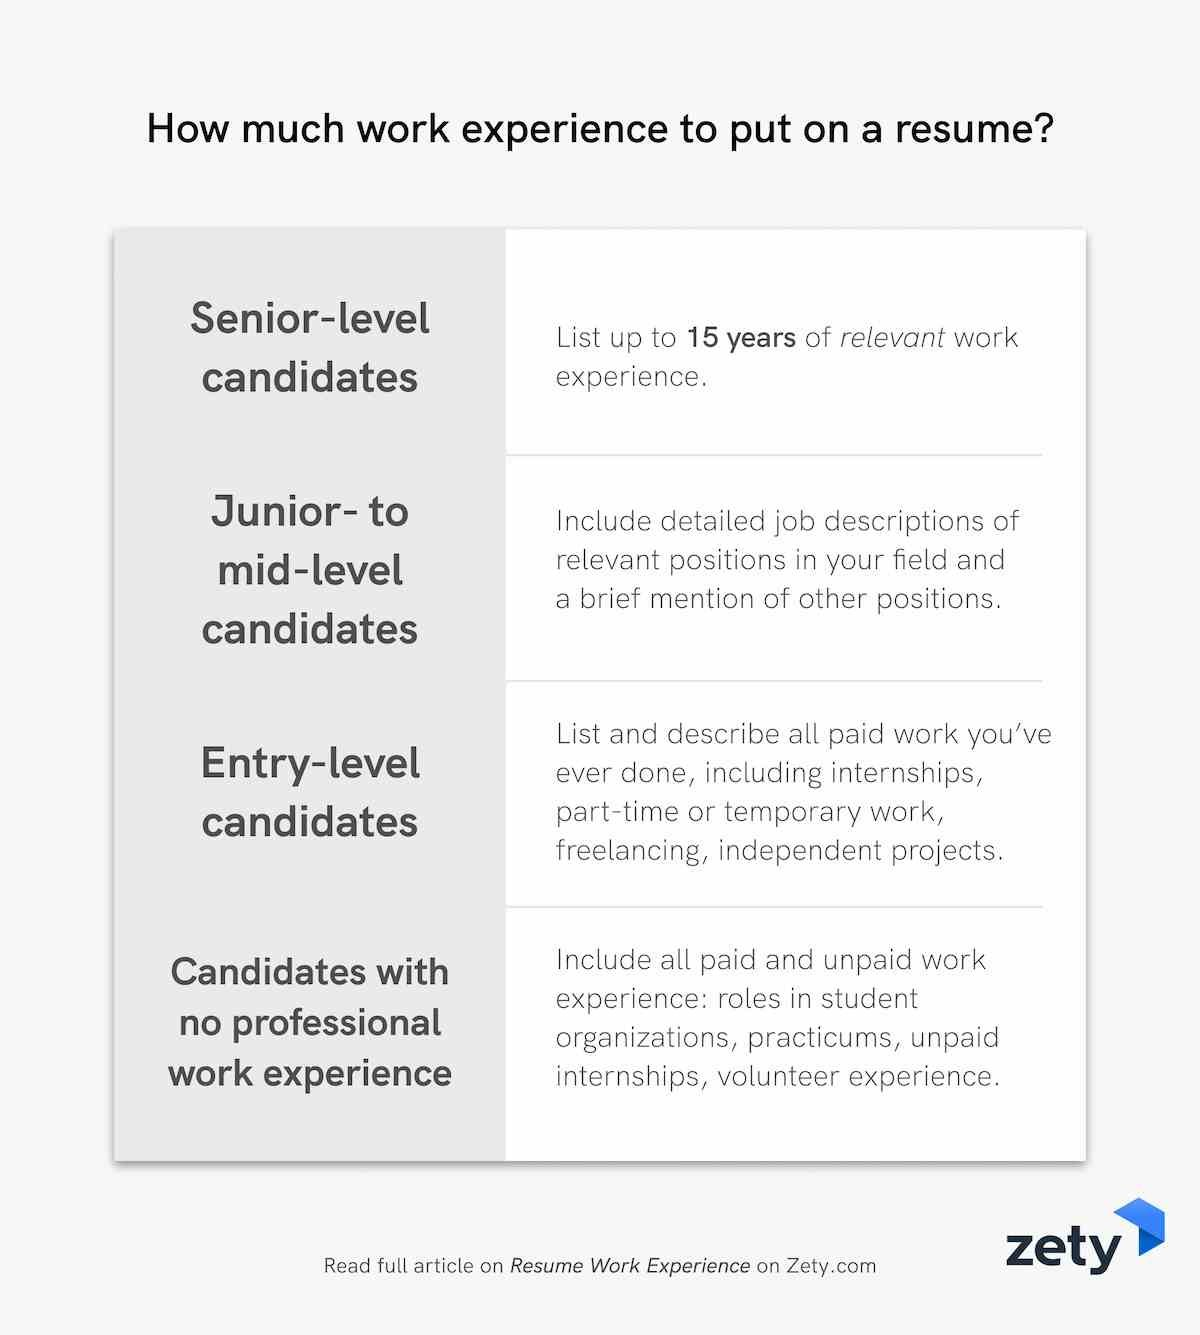 resume work experience history example job descriptions should pay for much to put on Resume Should I Pay For A Resume